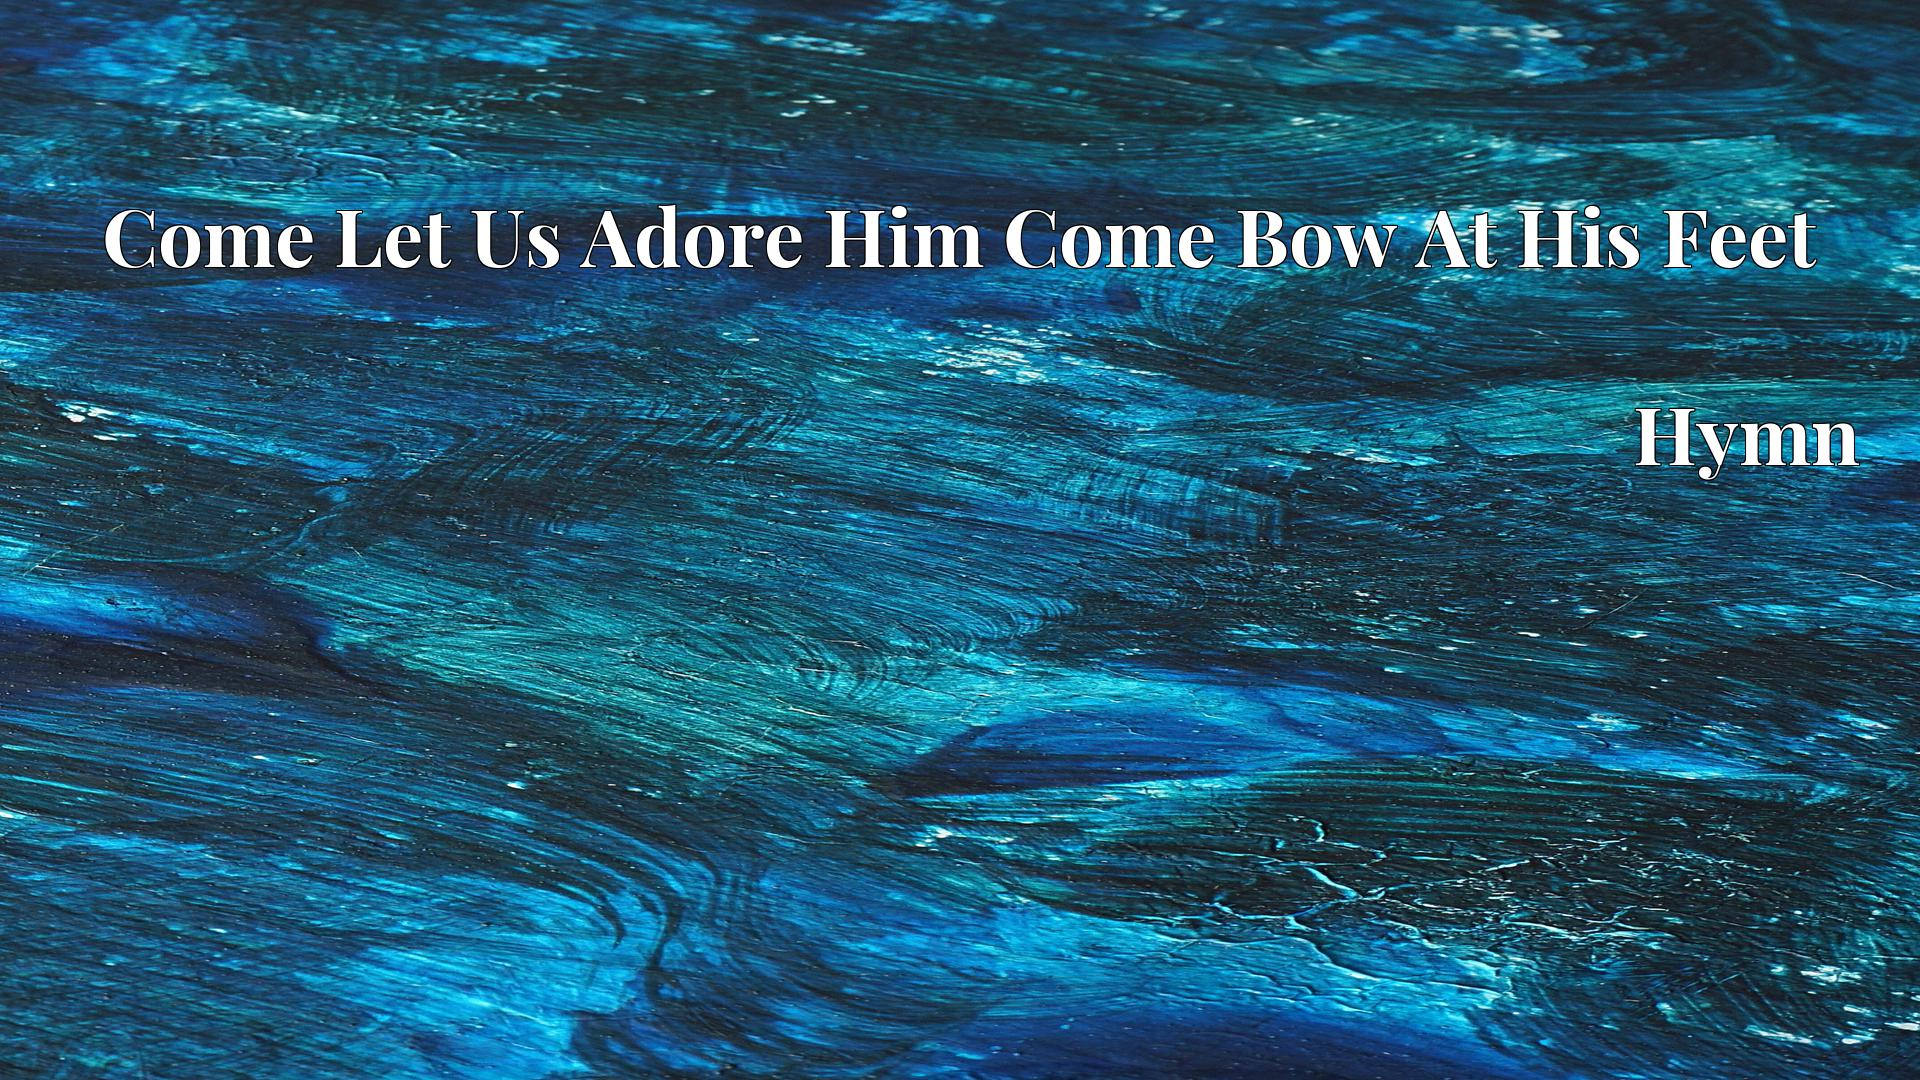 Come Let Us Adore Him Come Bow At His Feet - Hymn